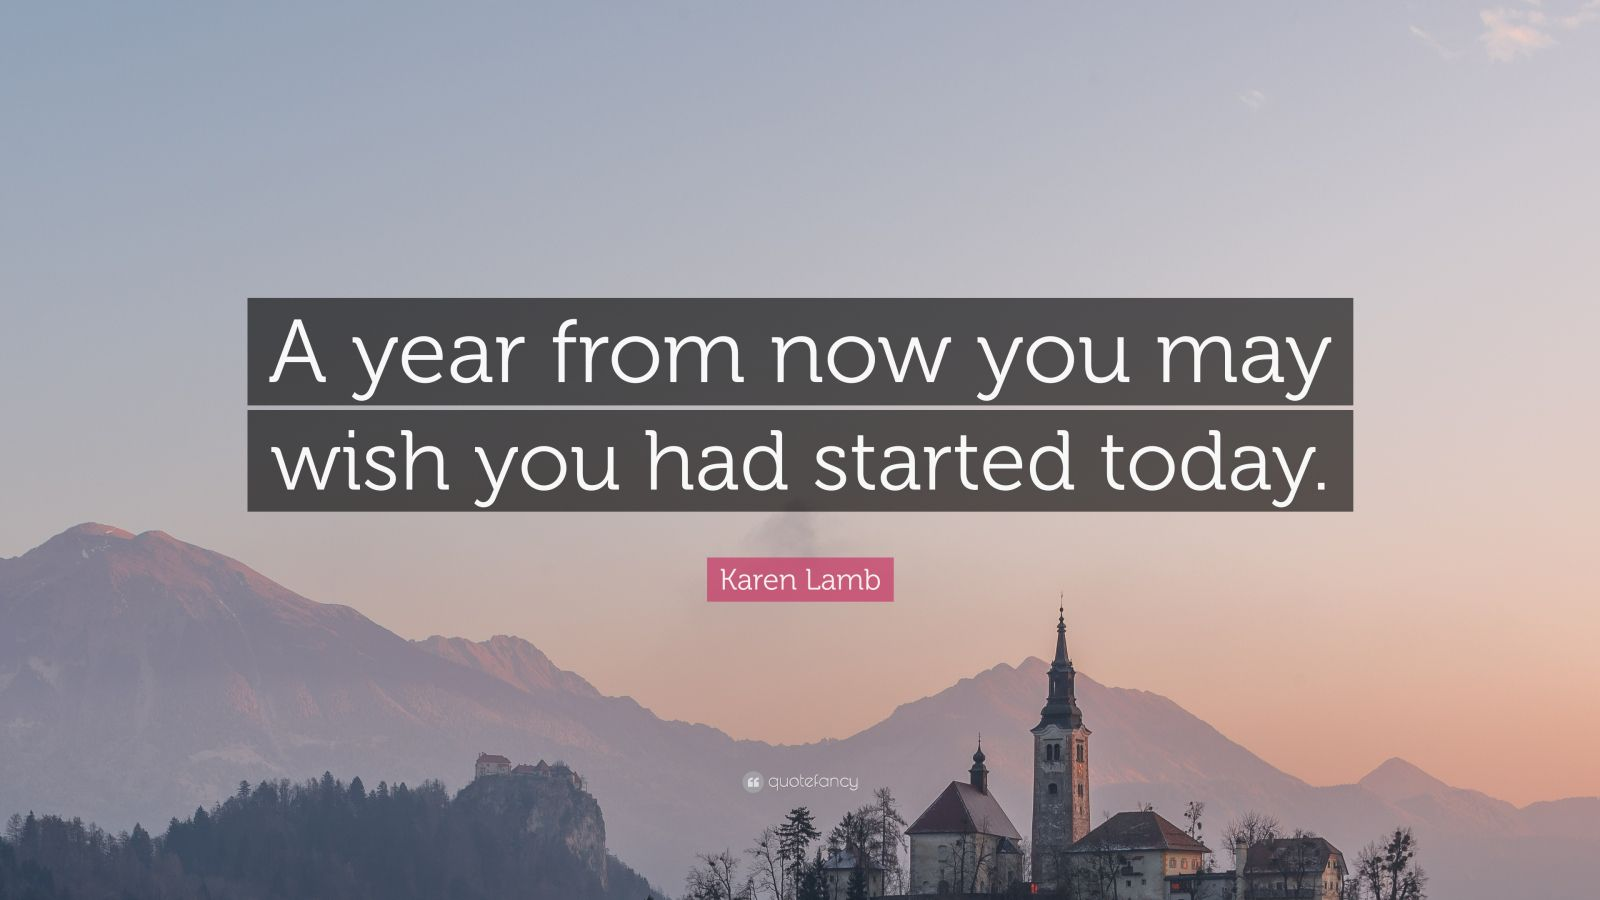 Brian Tracy Quotes Wallpaper Karen Lamb Quote A Year From Now You May Wish You Had